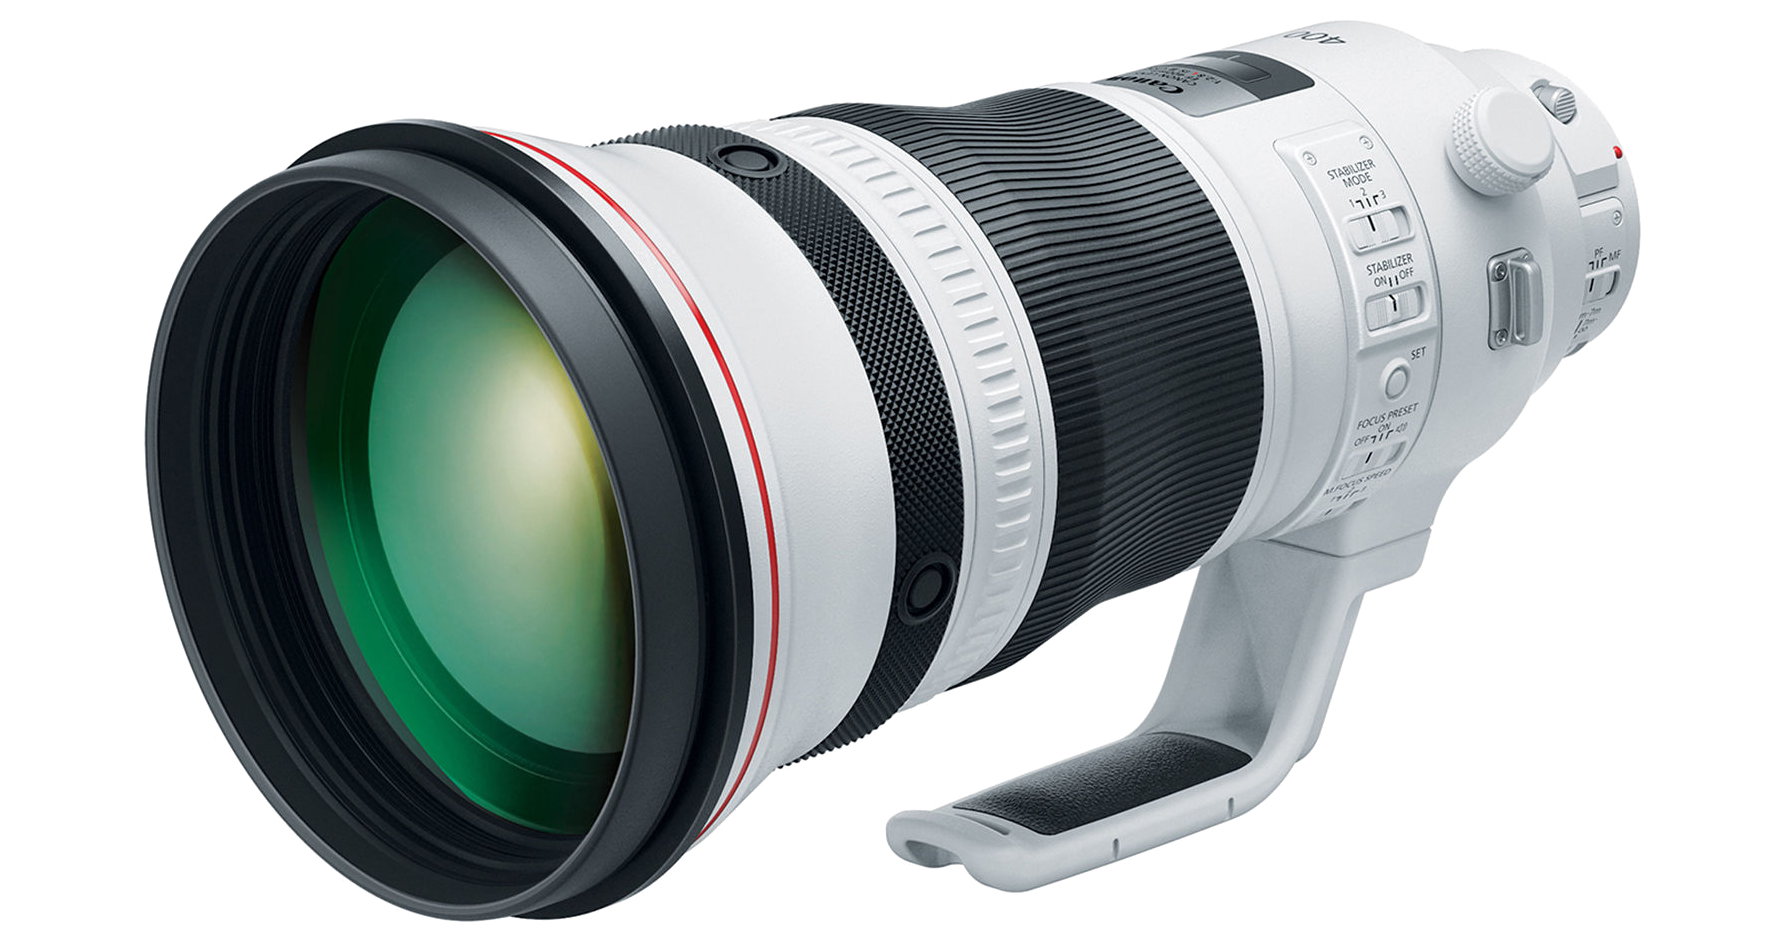 NOW IN STOCK: The Canon EF 400mm f/2.8L IS III